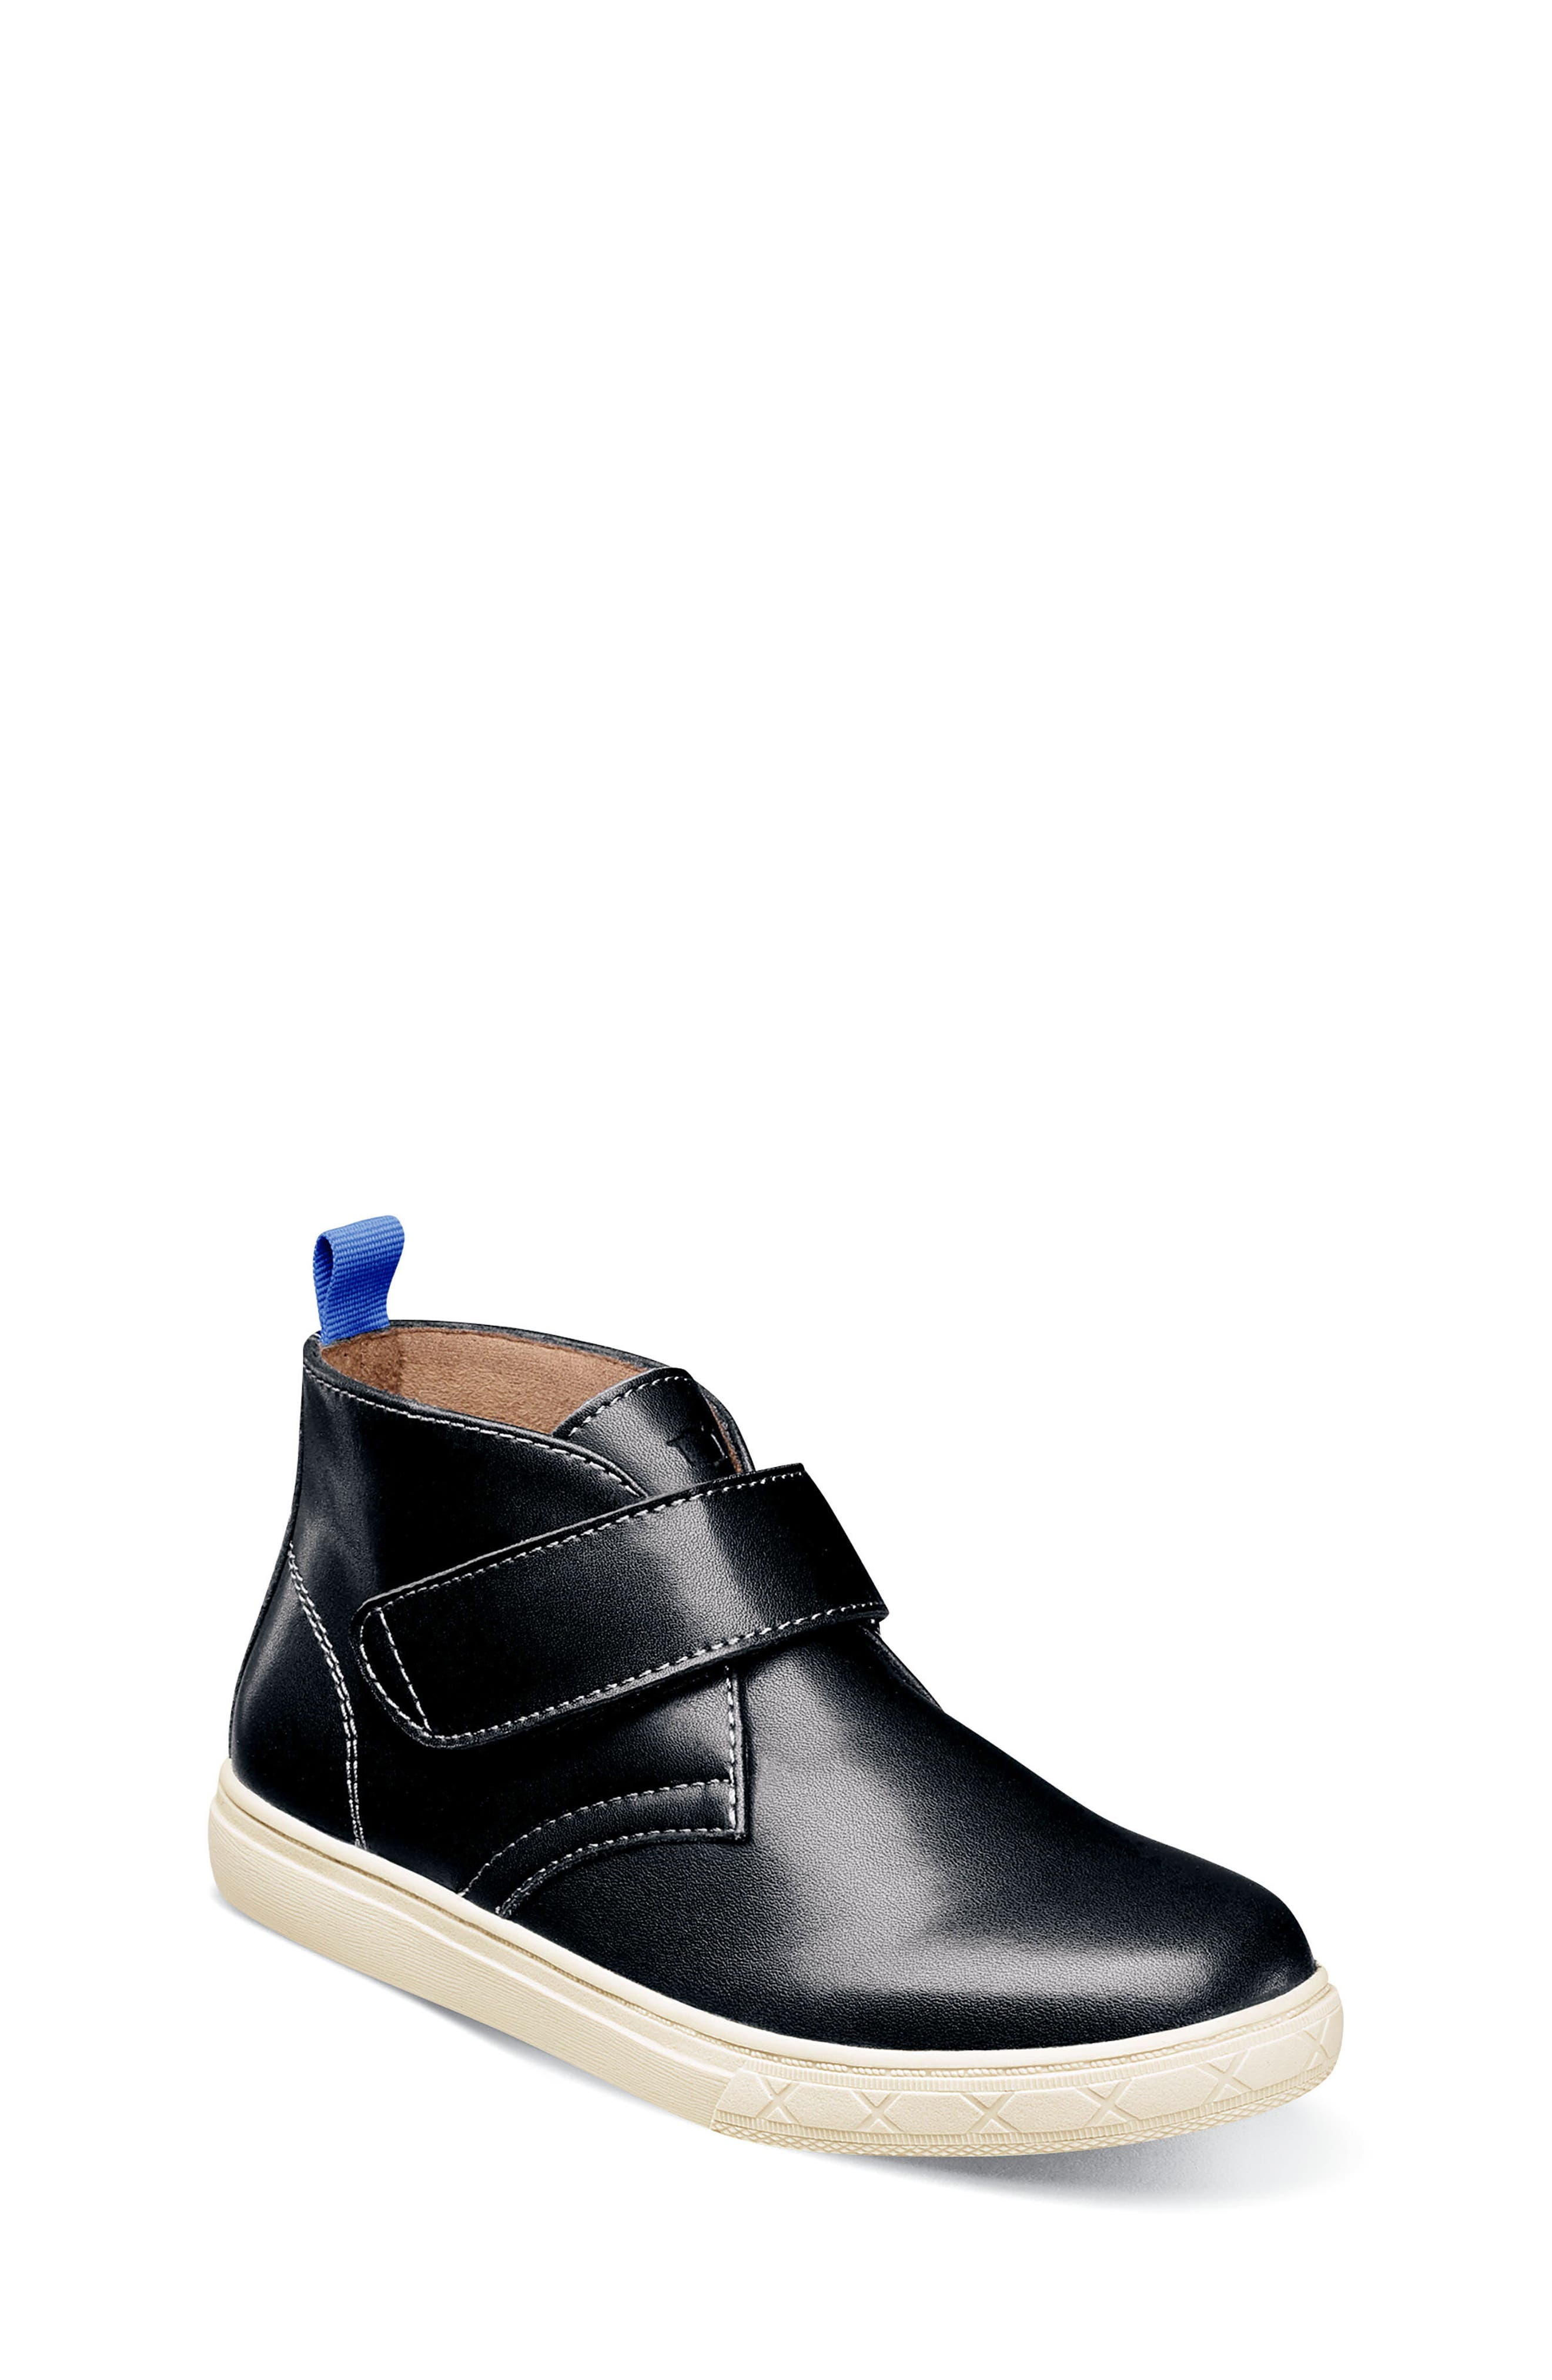 FLORSHEIM Curb Chukka Boot, Main, color, BLACK LEATHER